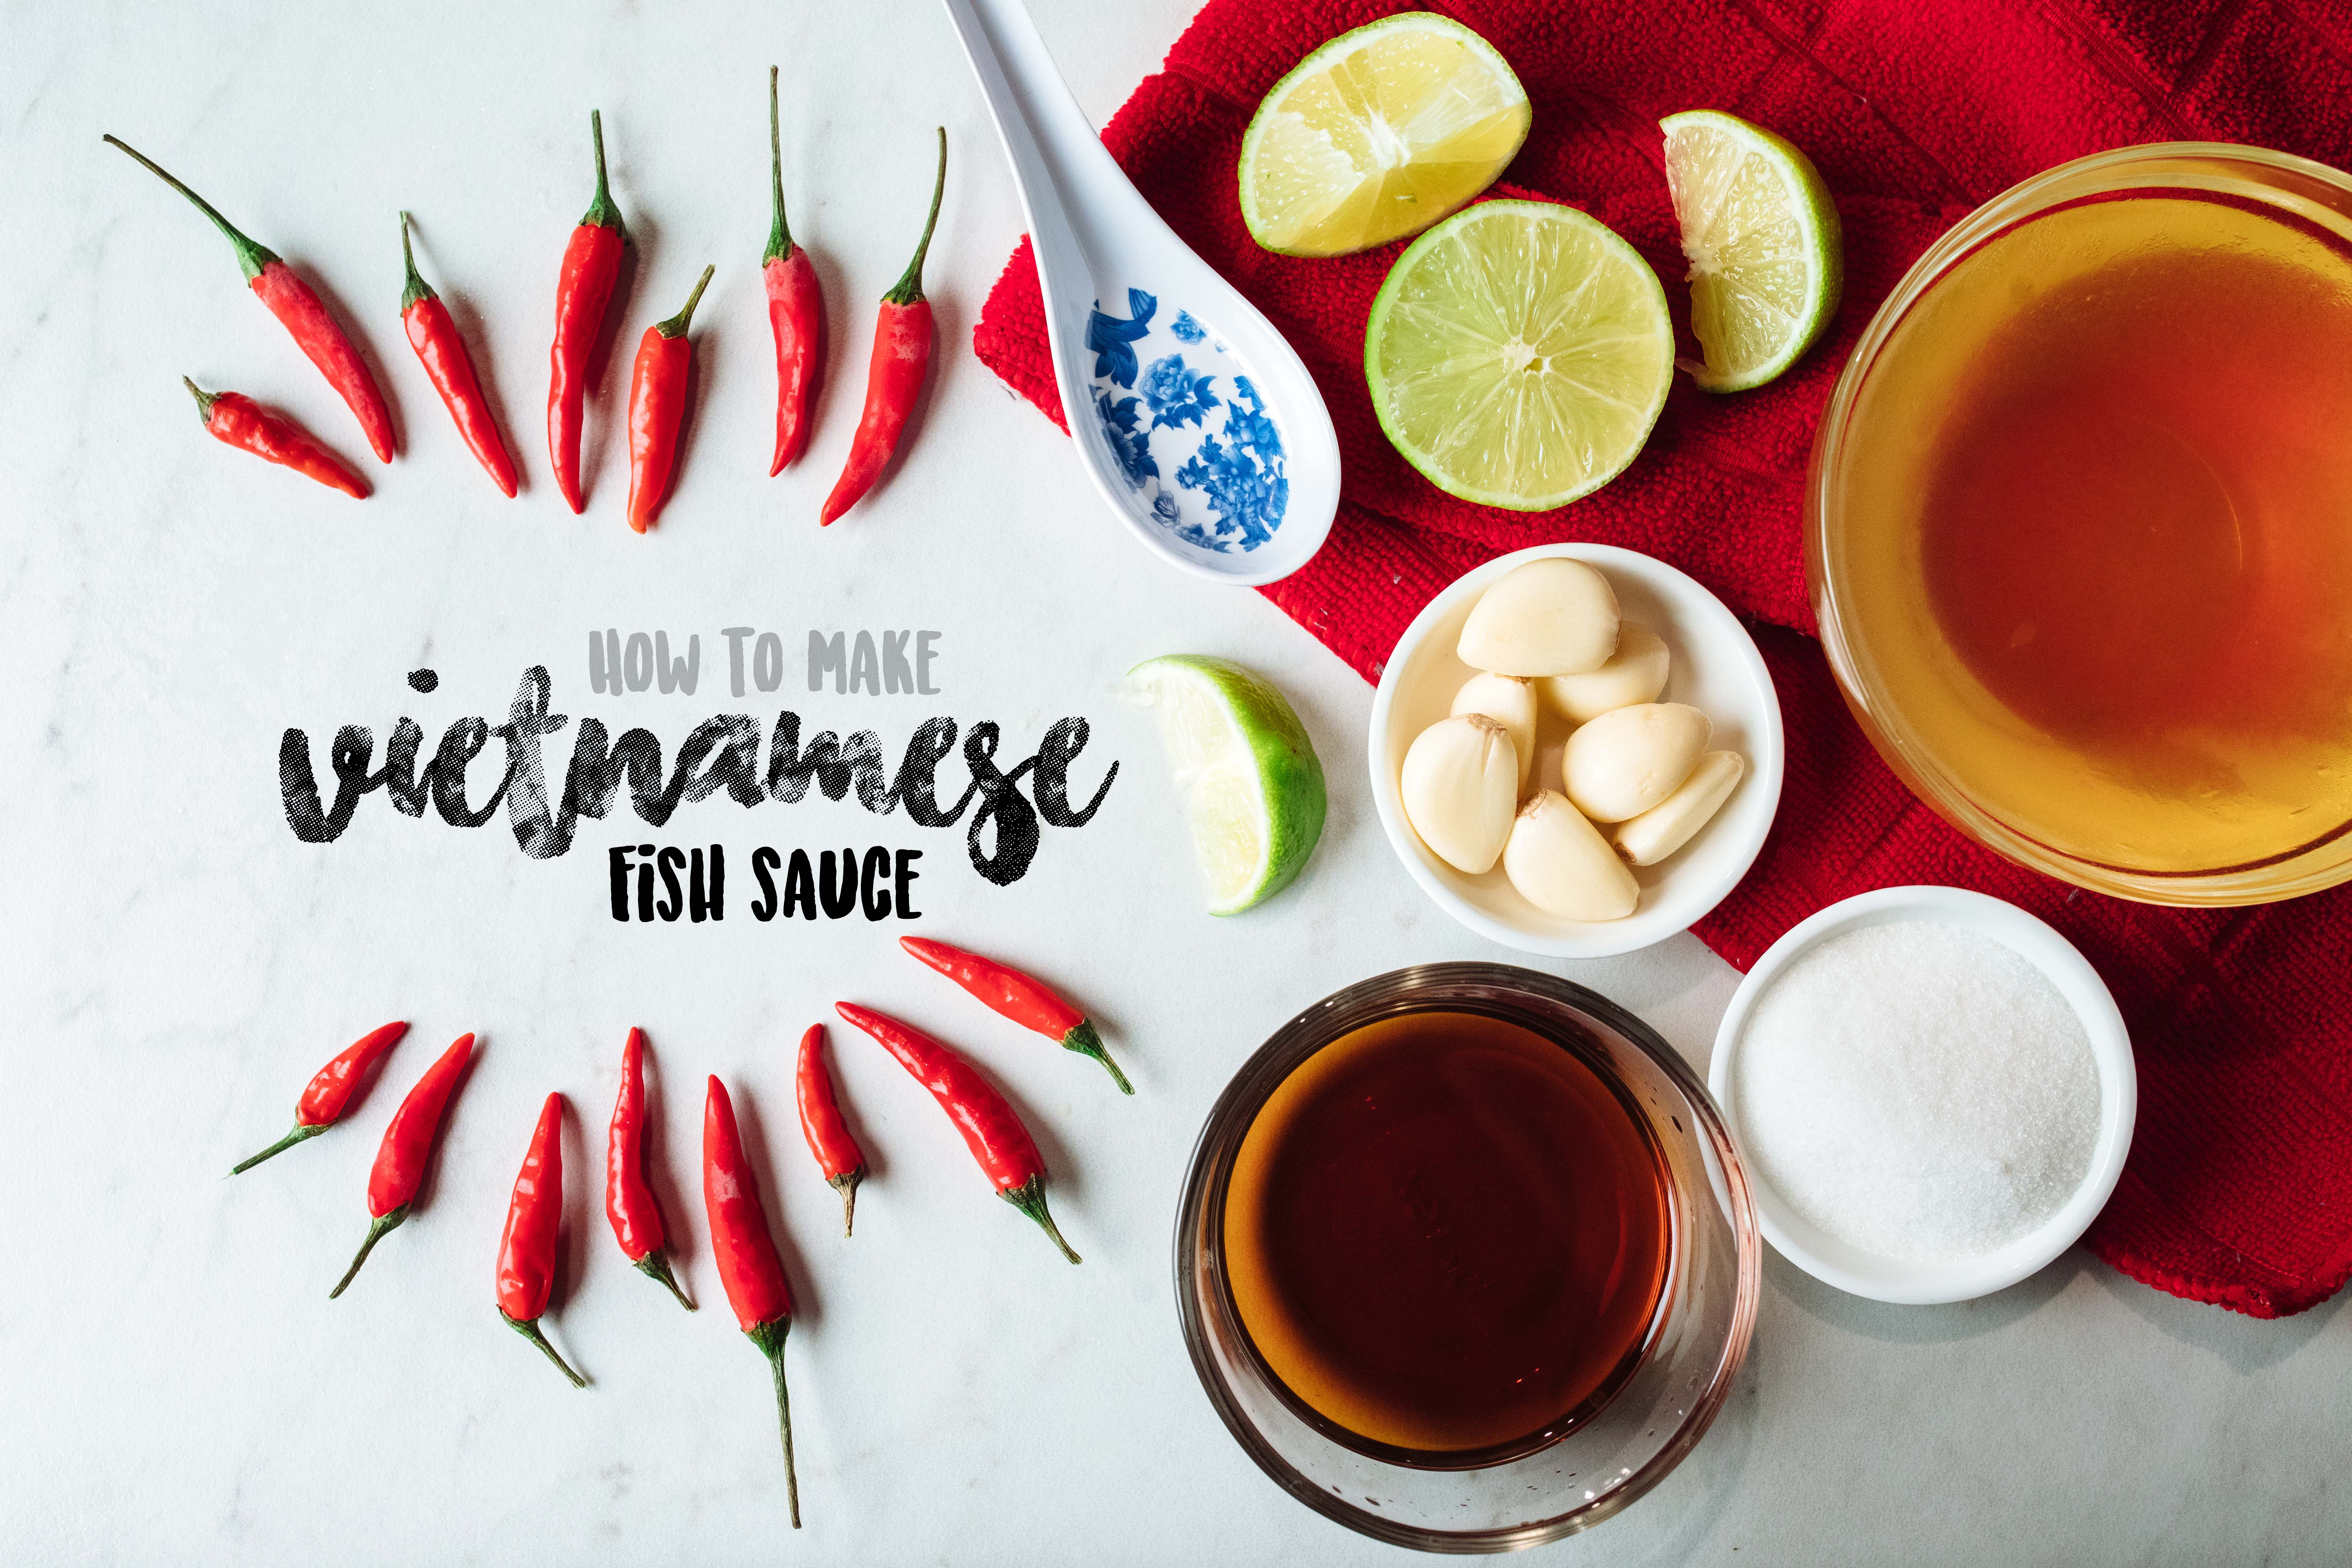 4 easy steps to make Vietnamese Fish Sauce